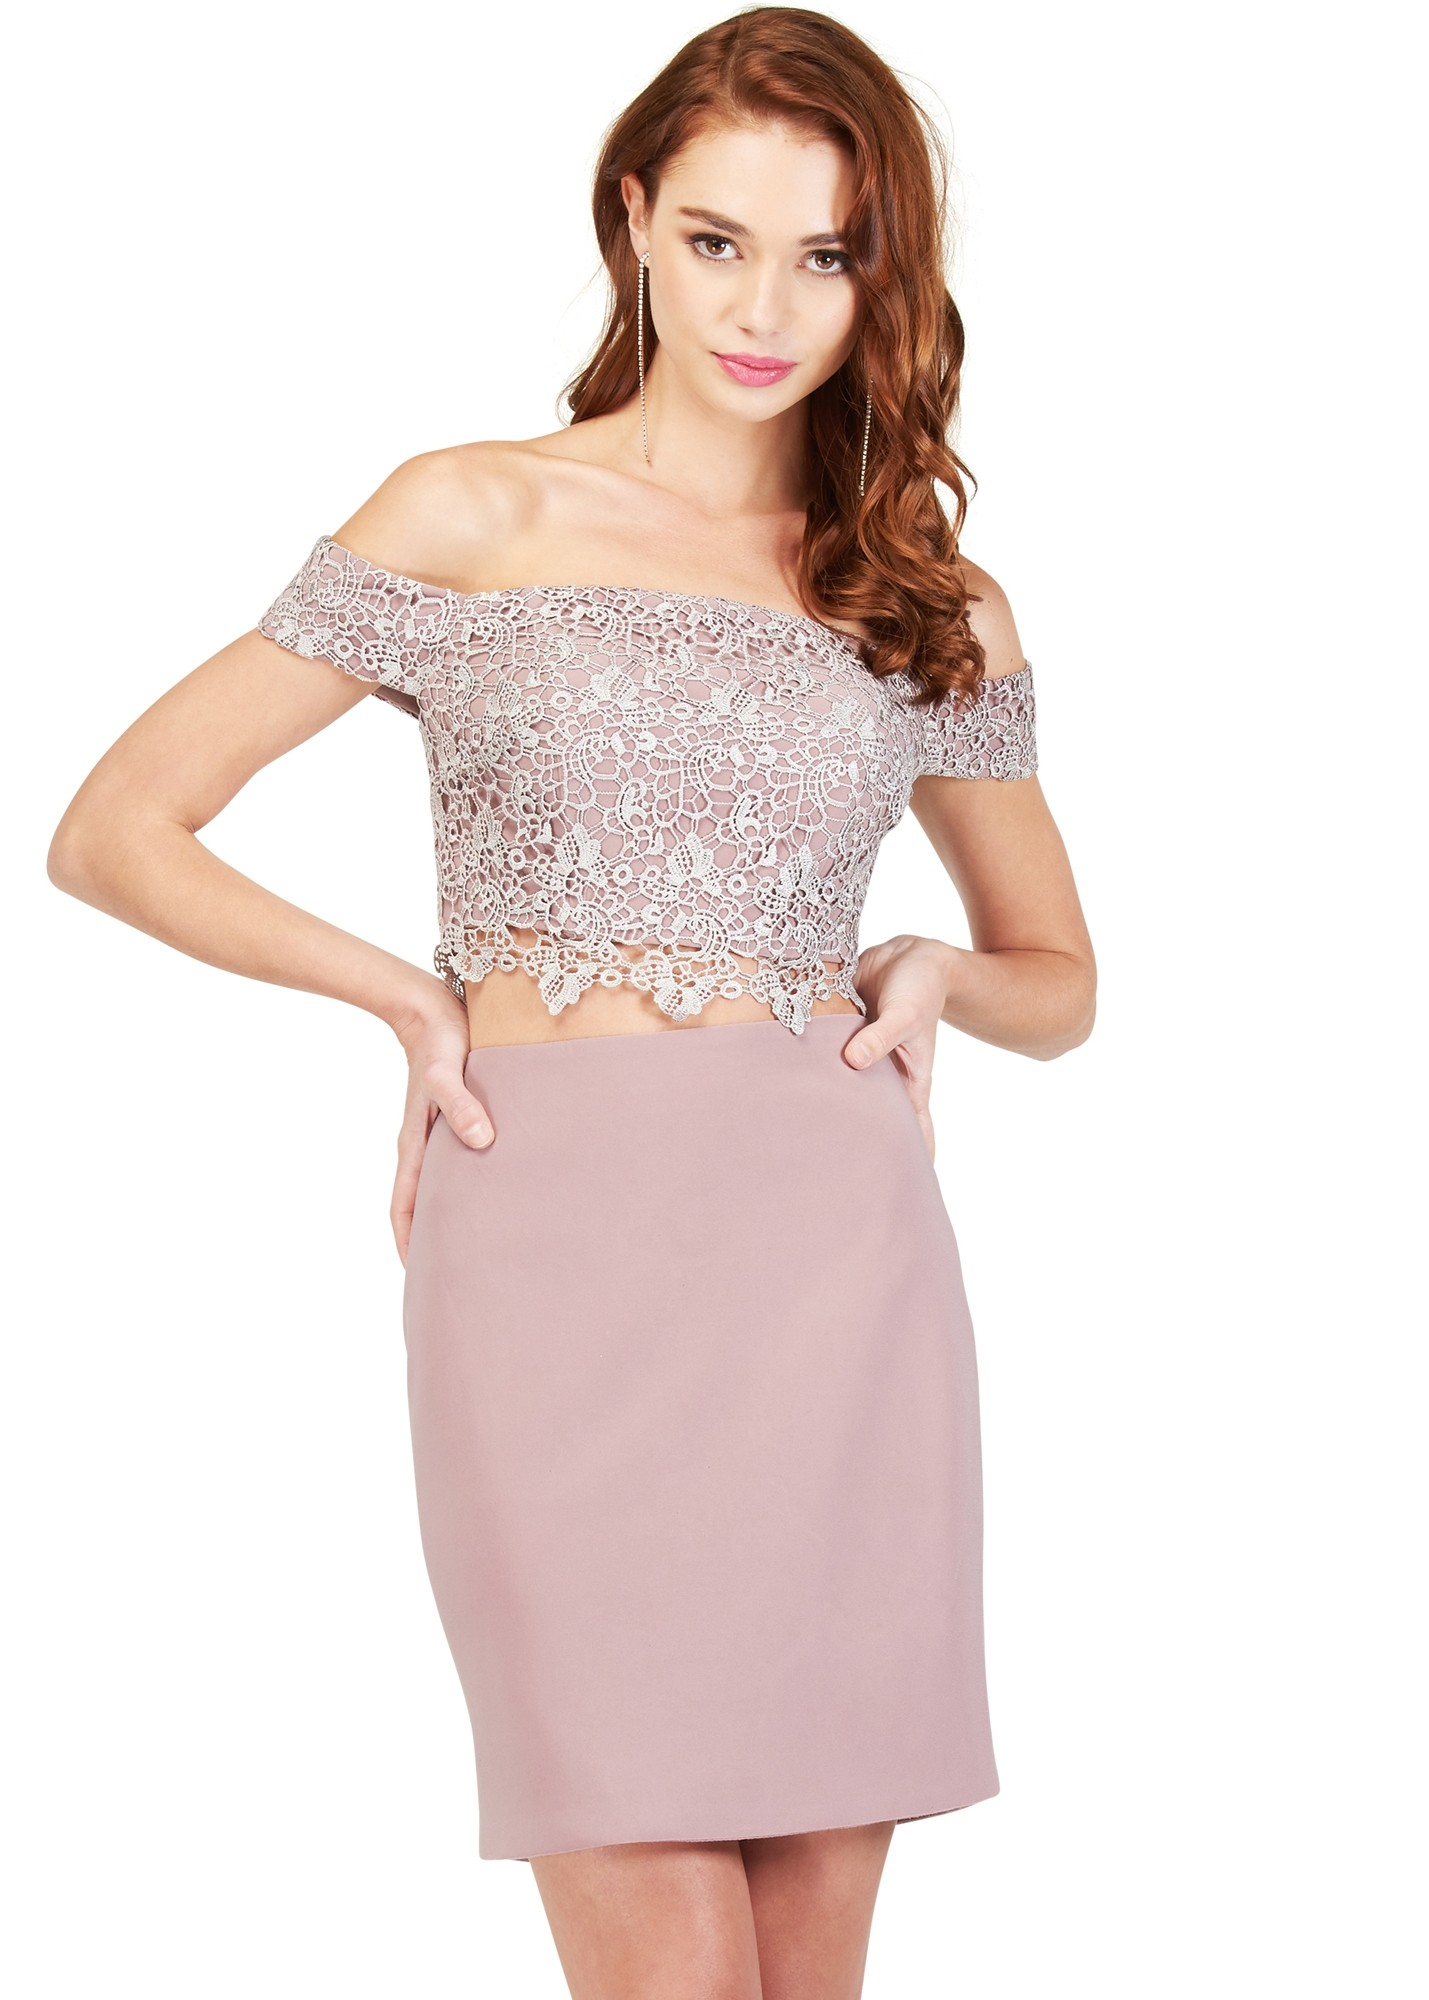 Cecilia Couture 1804 Lace Jersey Two-Piece Dress